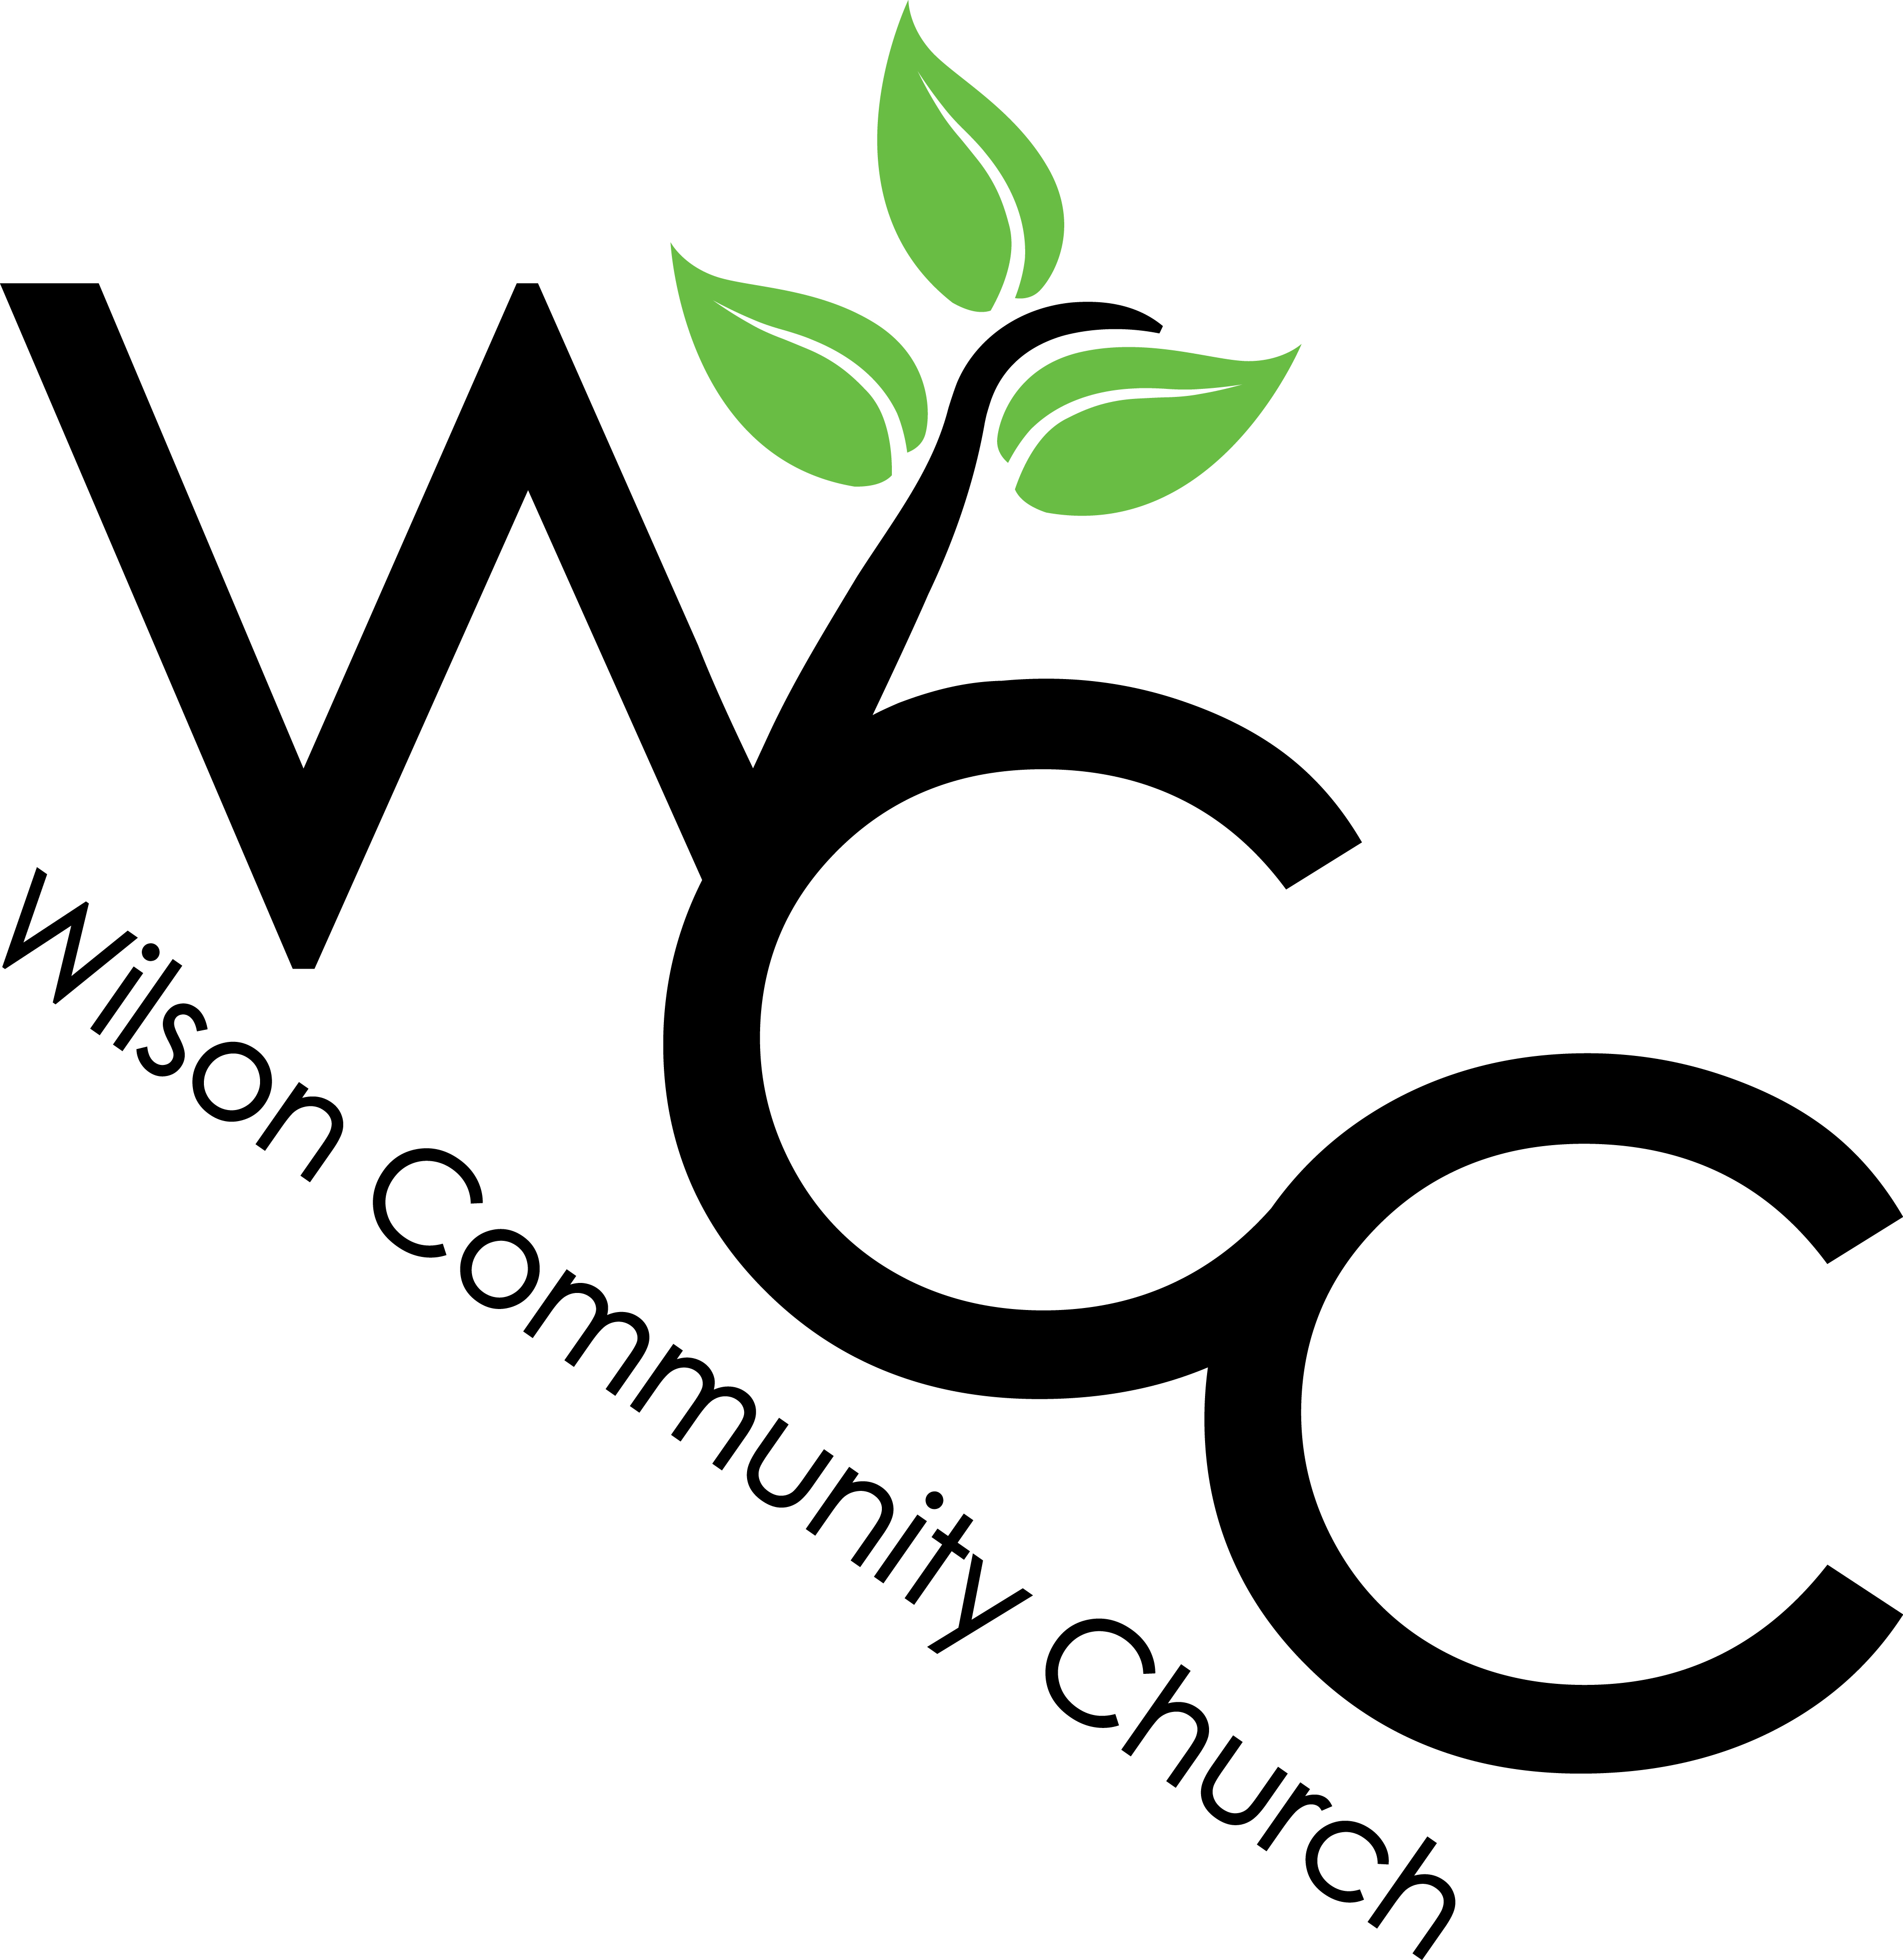 [OLD] Wilson Community Church Podcast: Gary Combs